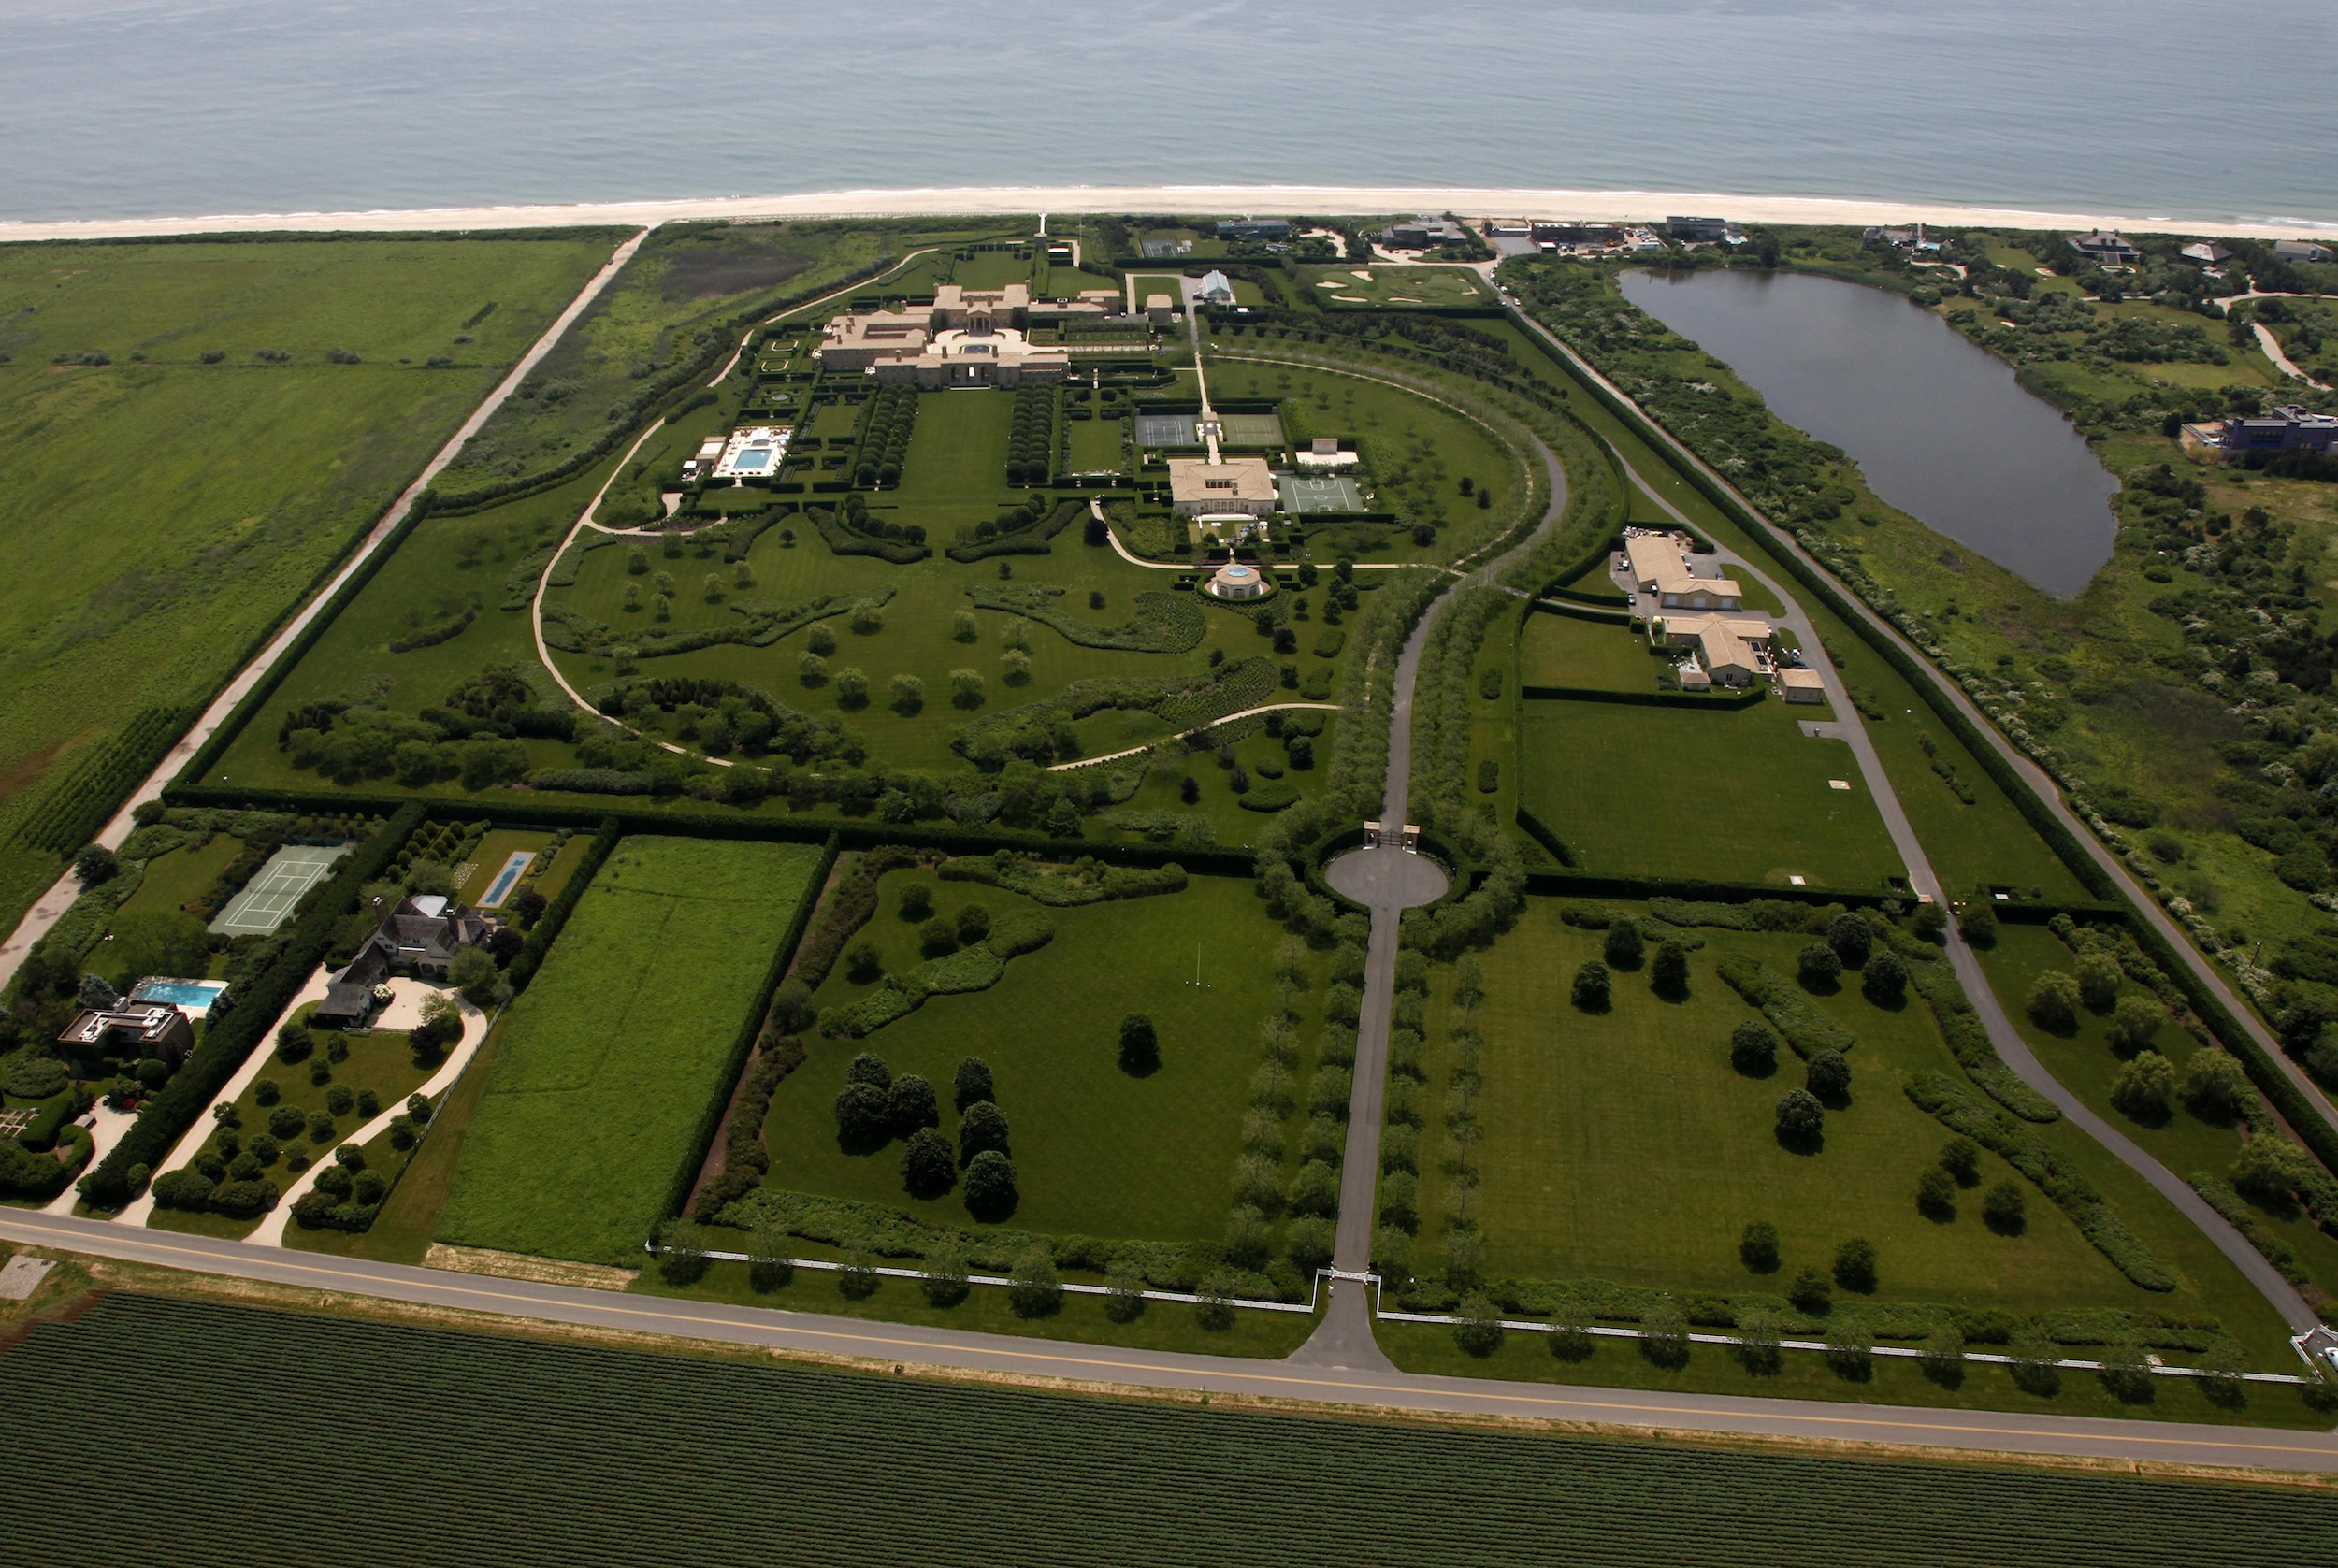 Fly over the country 39 s largest home like never before for Biggest homes in the hamptons